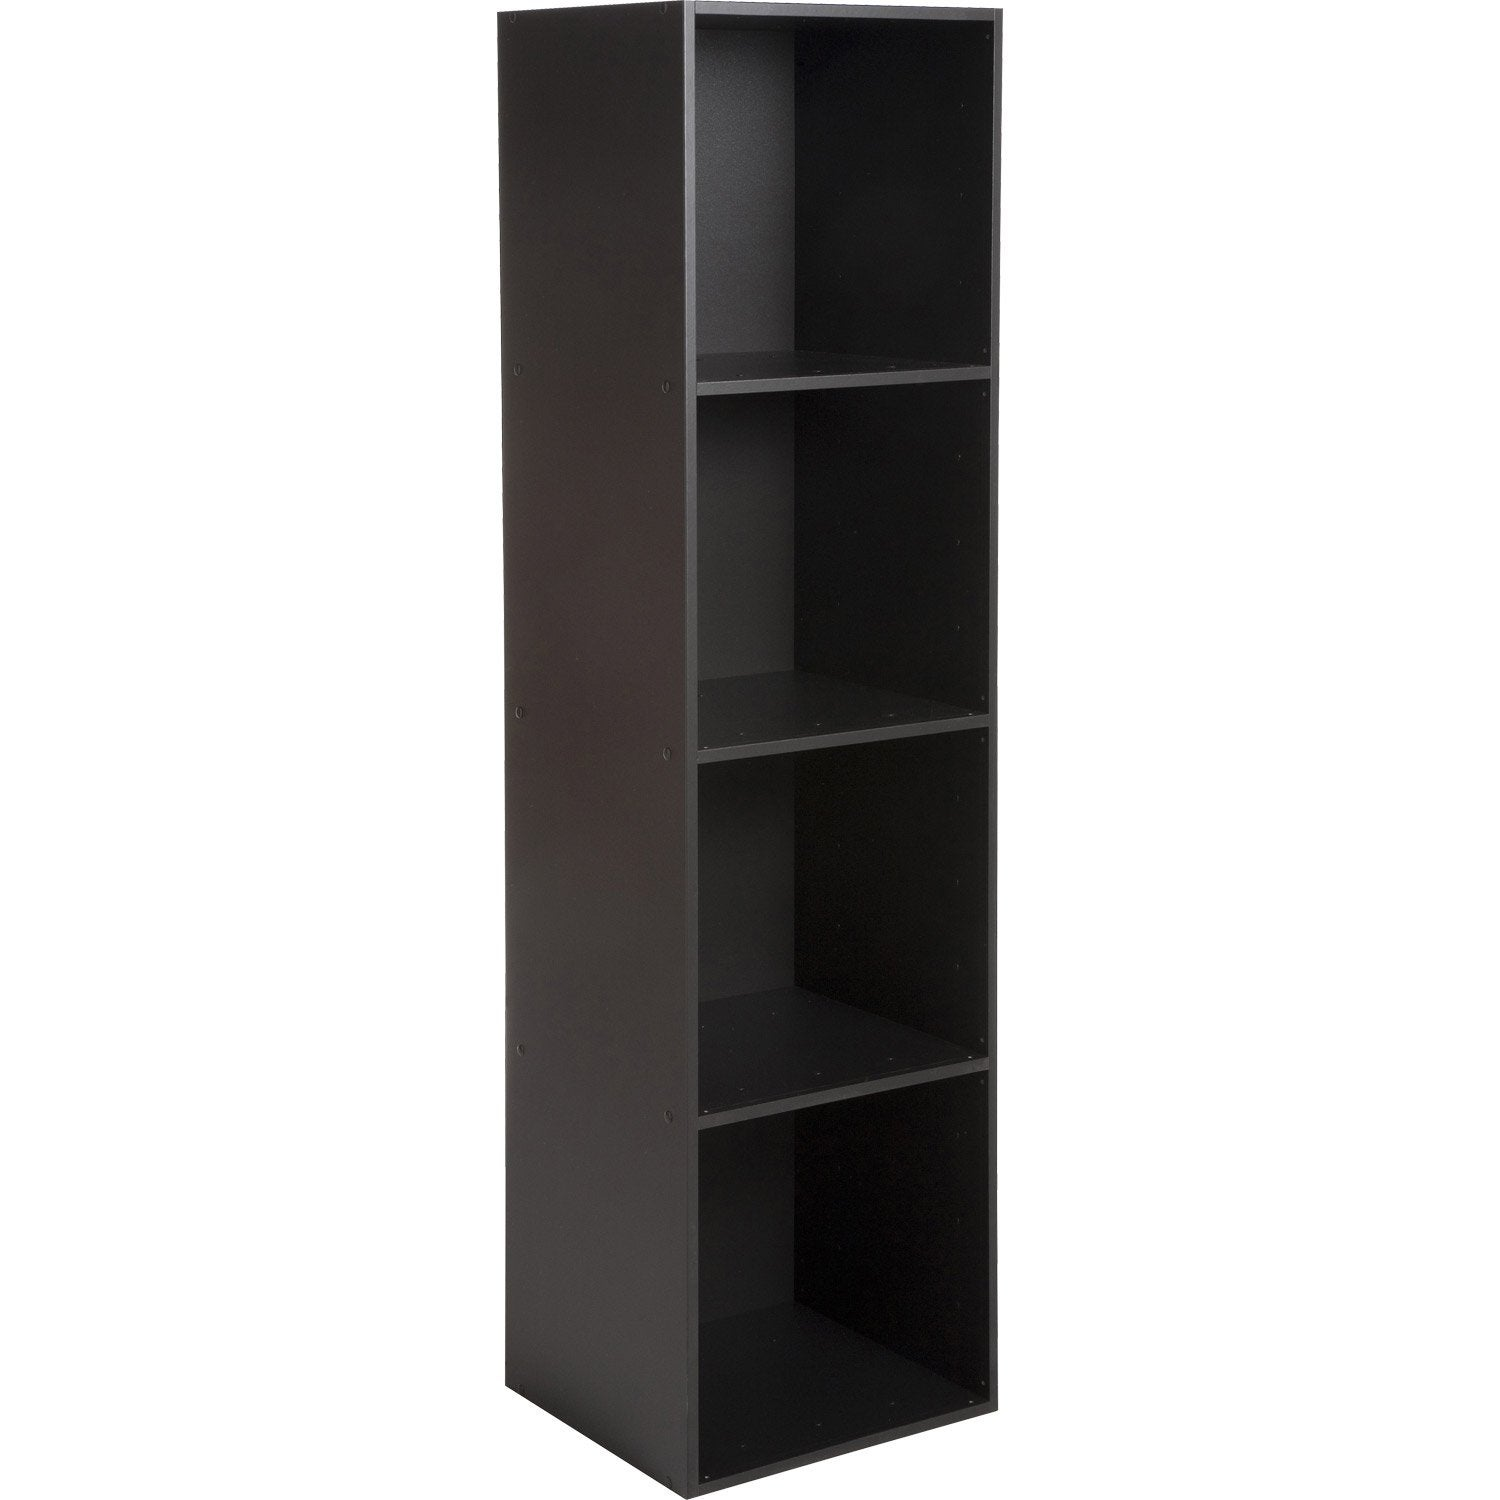 etag re 4 cases multikaz noir x x cm leroy merlin. Black Bedroom Furniture Sets. Home Design Ideas